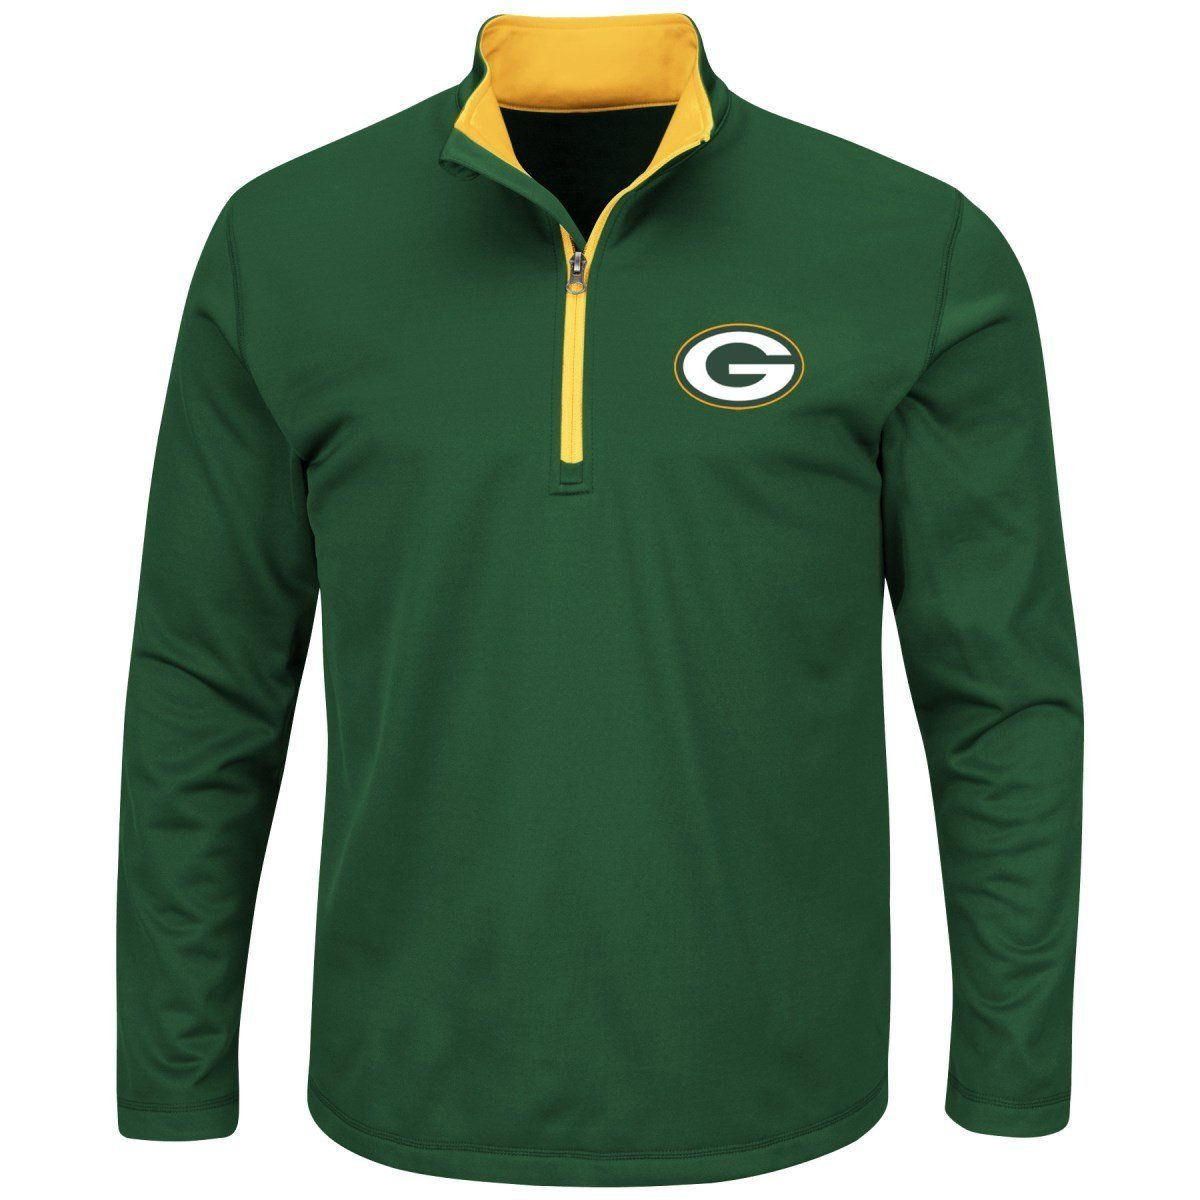 NFL Men/'s Green Light Weight Green Bay Packers Pullover Hoodie